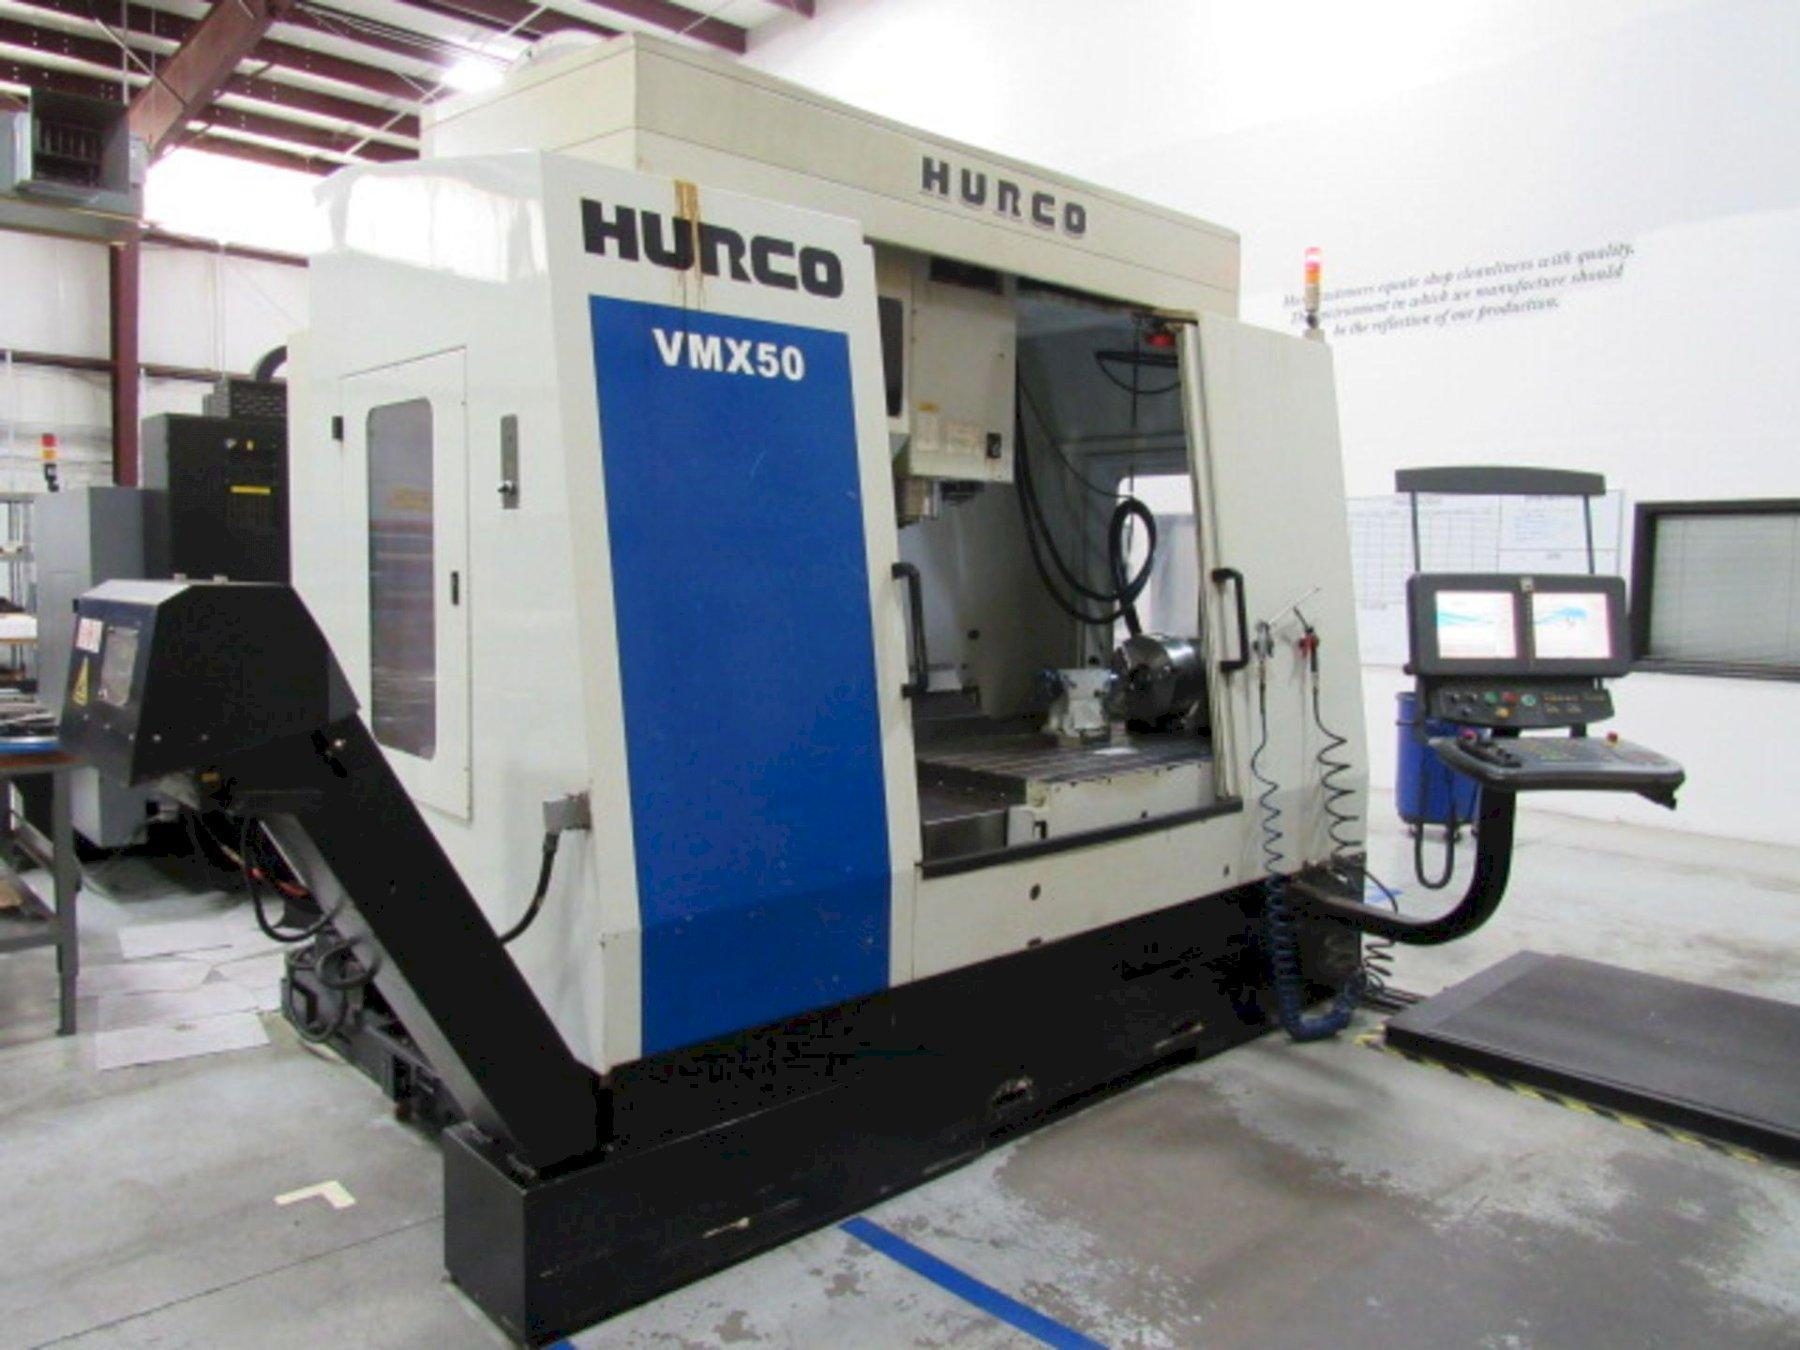 Hurco VMX50/50 CNC Vertical Machining Center, WinMax Control, 50